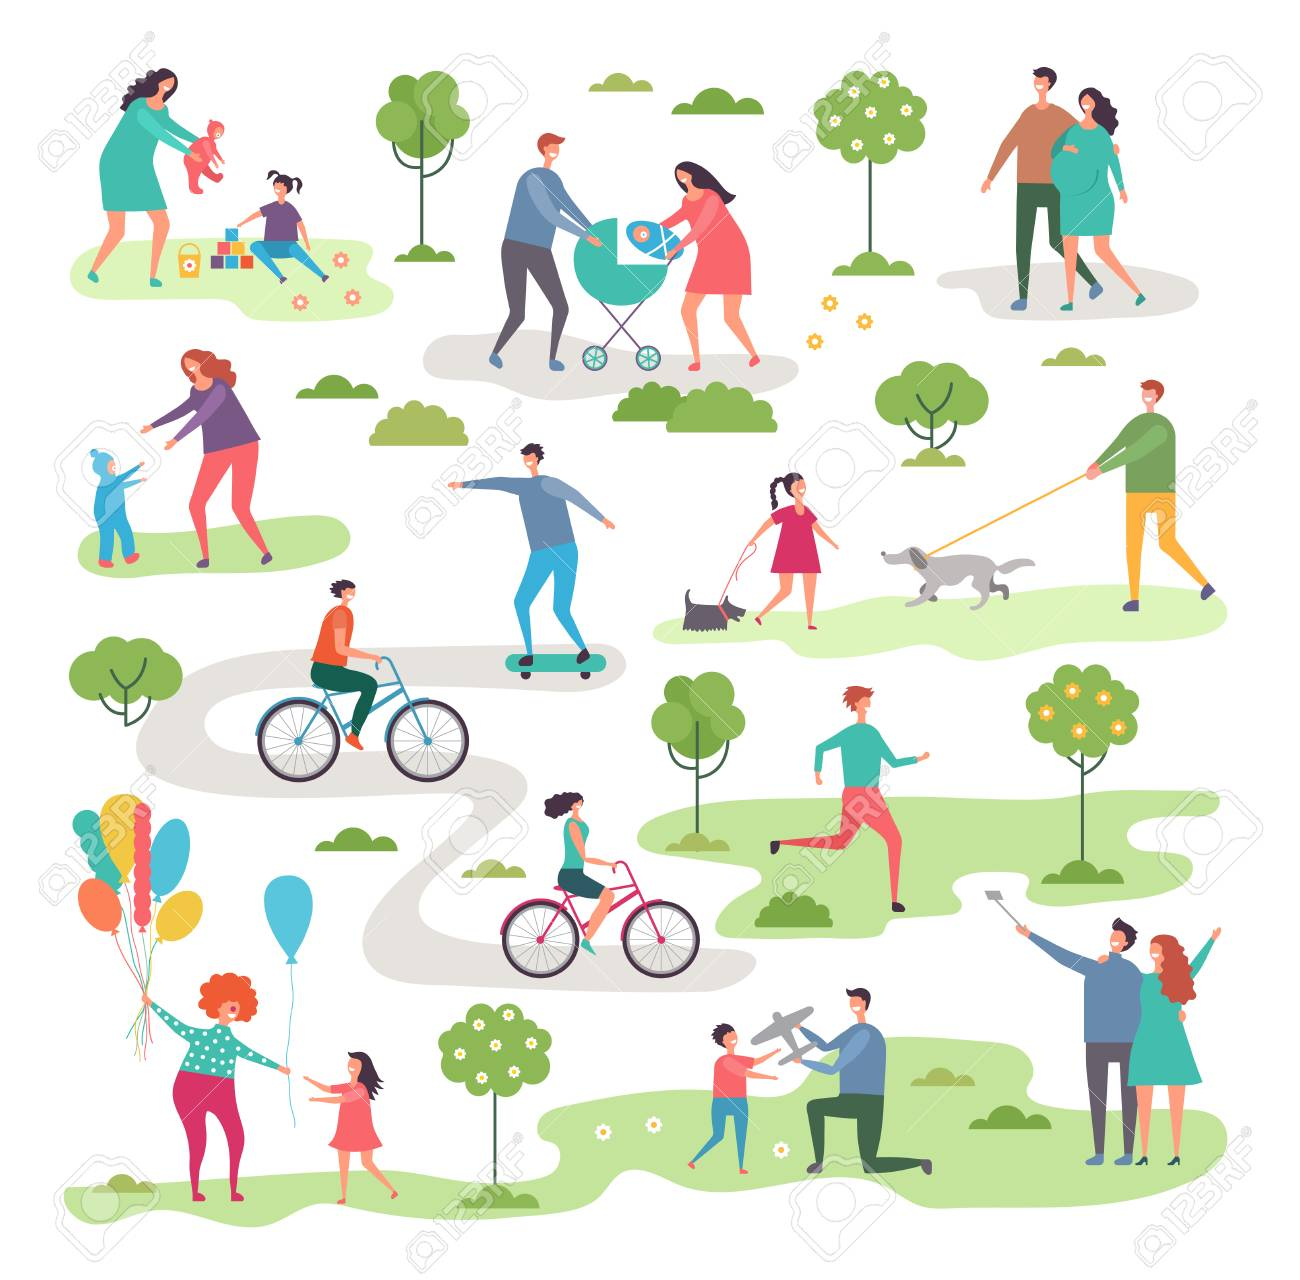 Outdoor activism in urban park. Bicycle riders and walking peoples. Landscape nature, activity bicycle sport illustration vector - 114805379